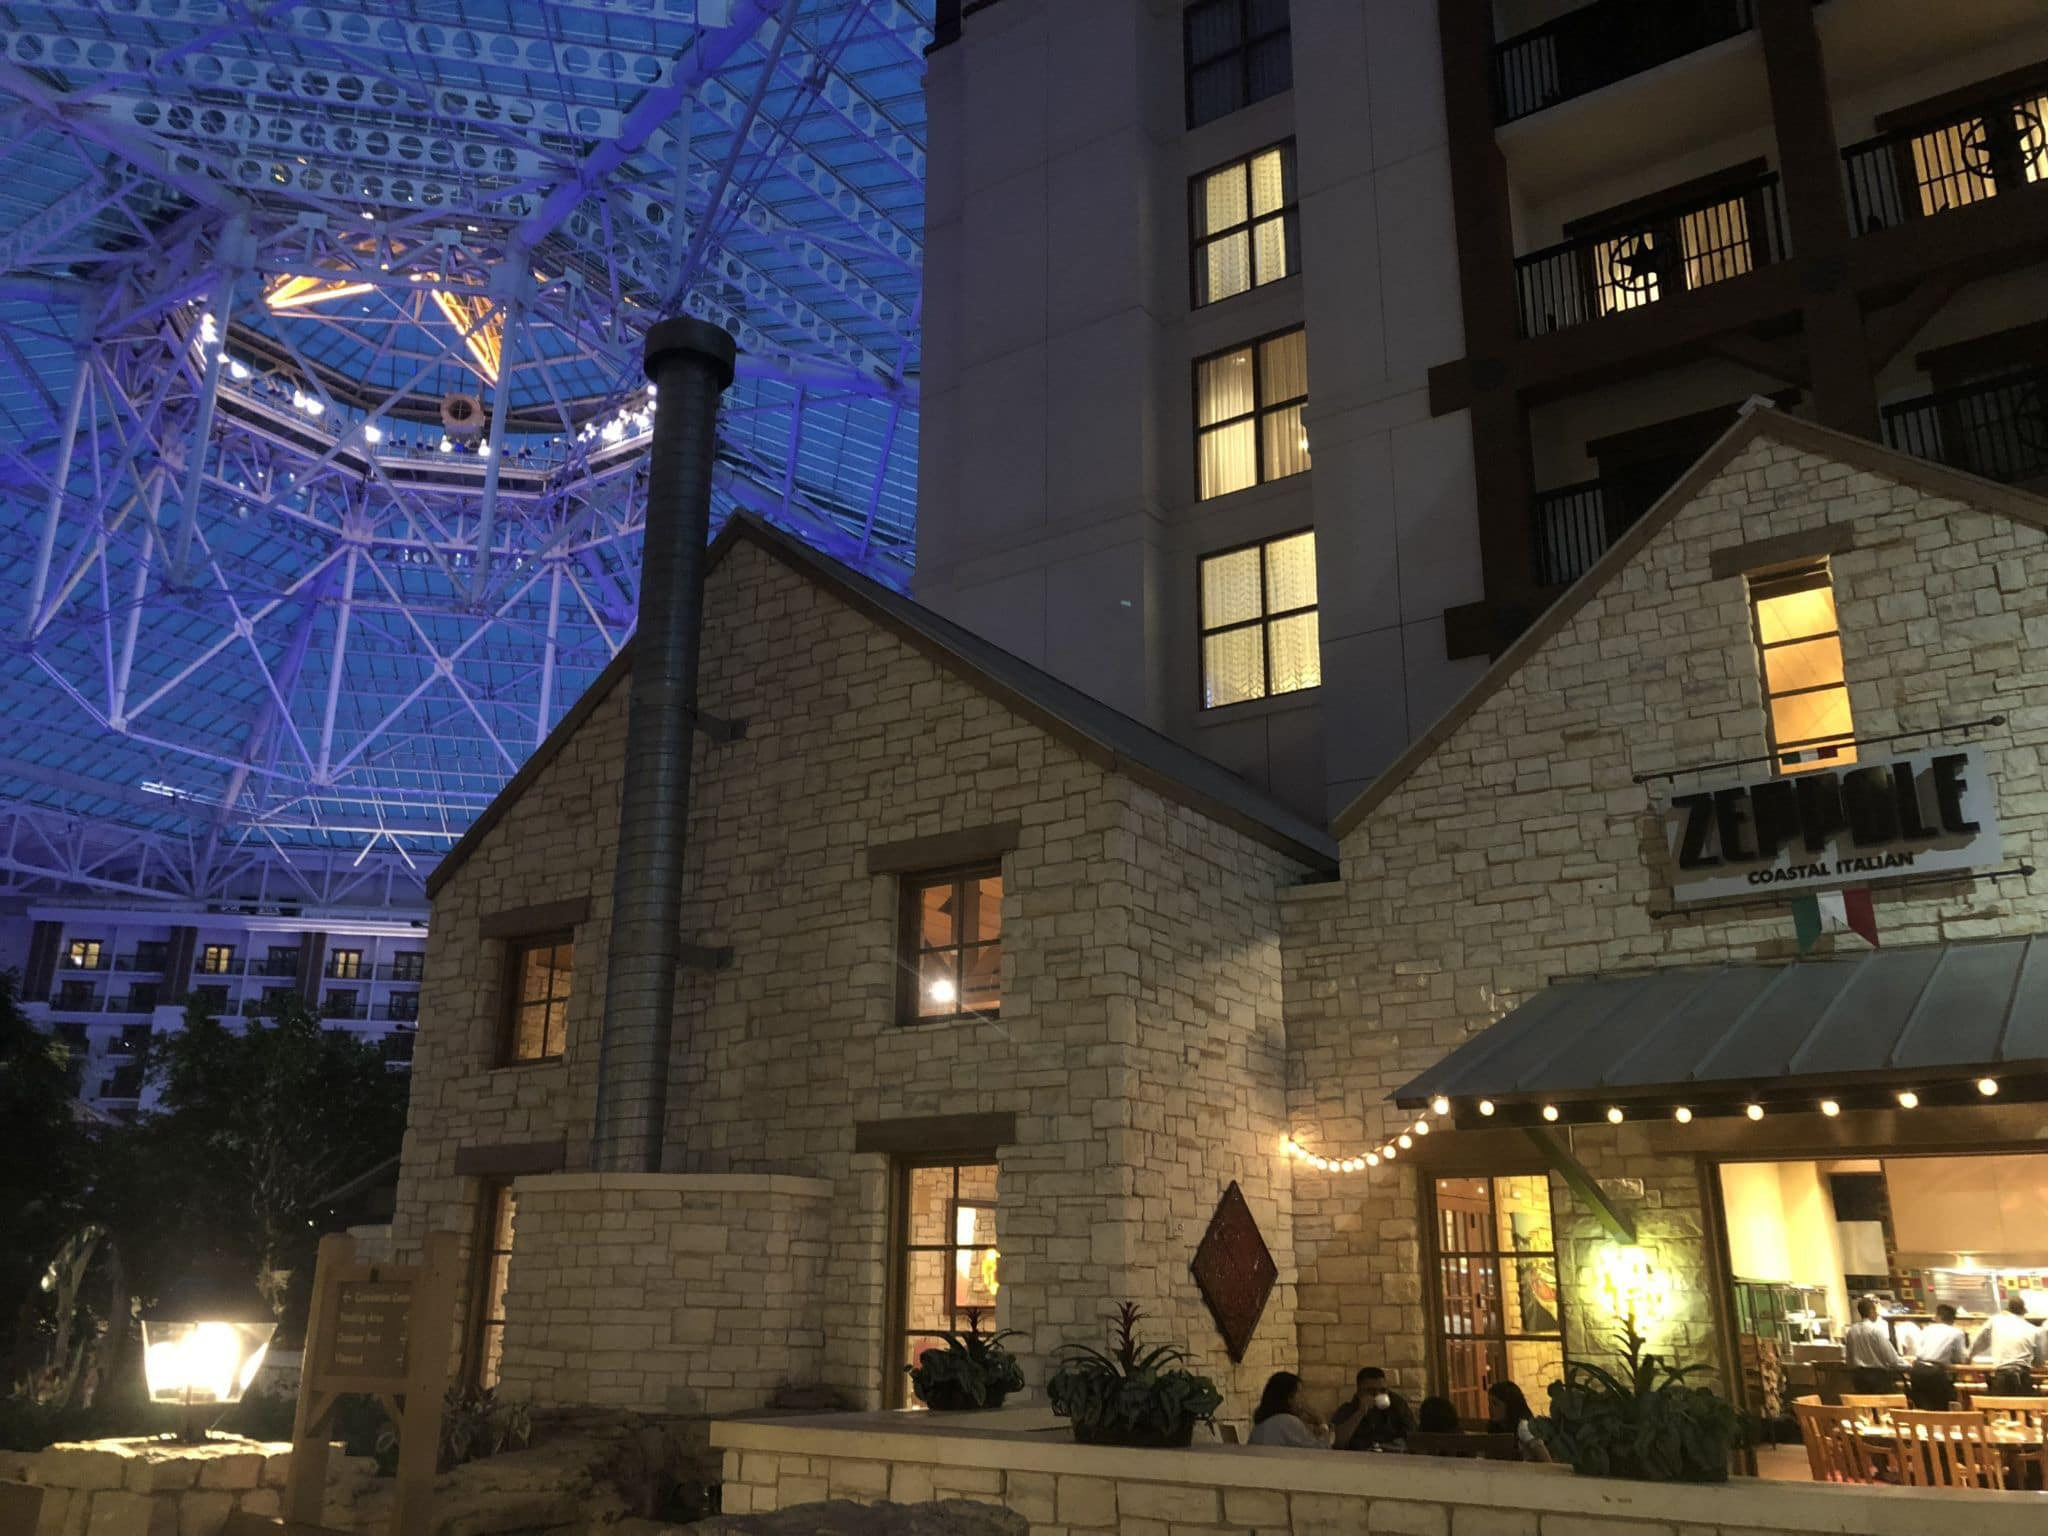 DevCon 2018 Gaylord Texan Resort Preview 15